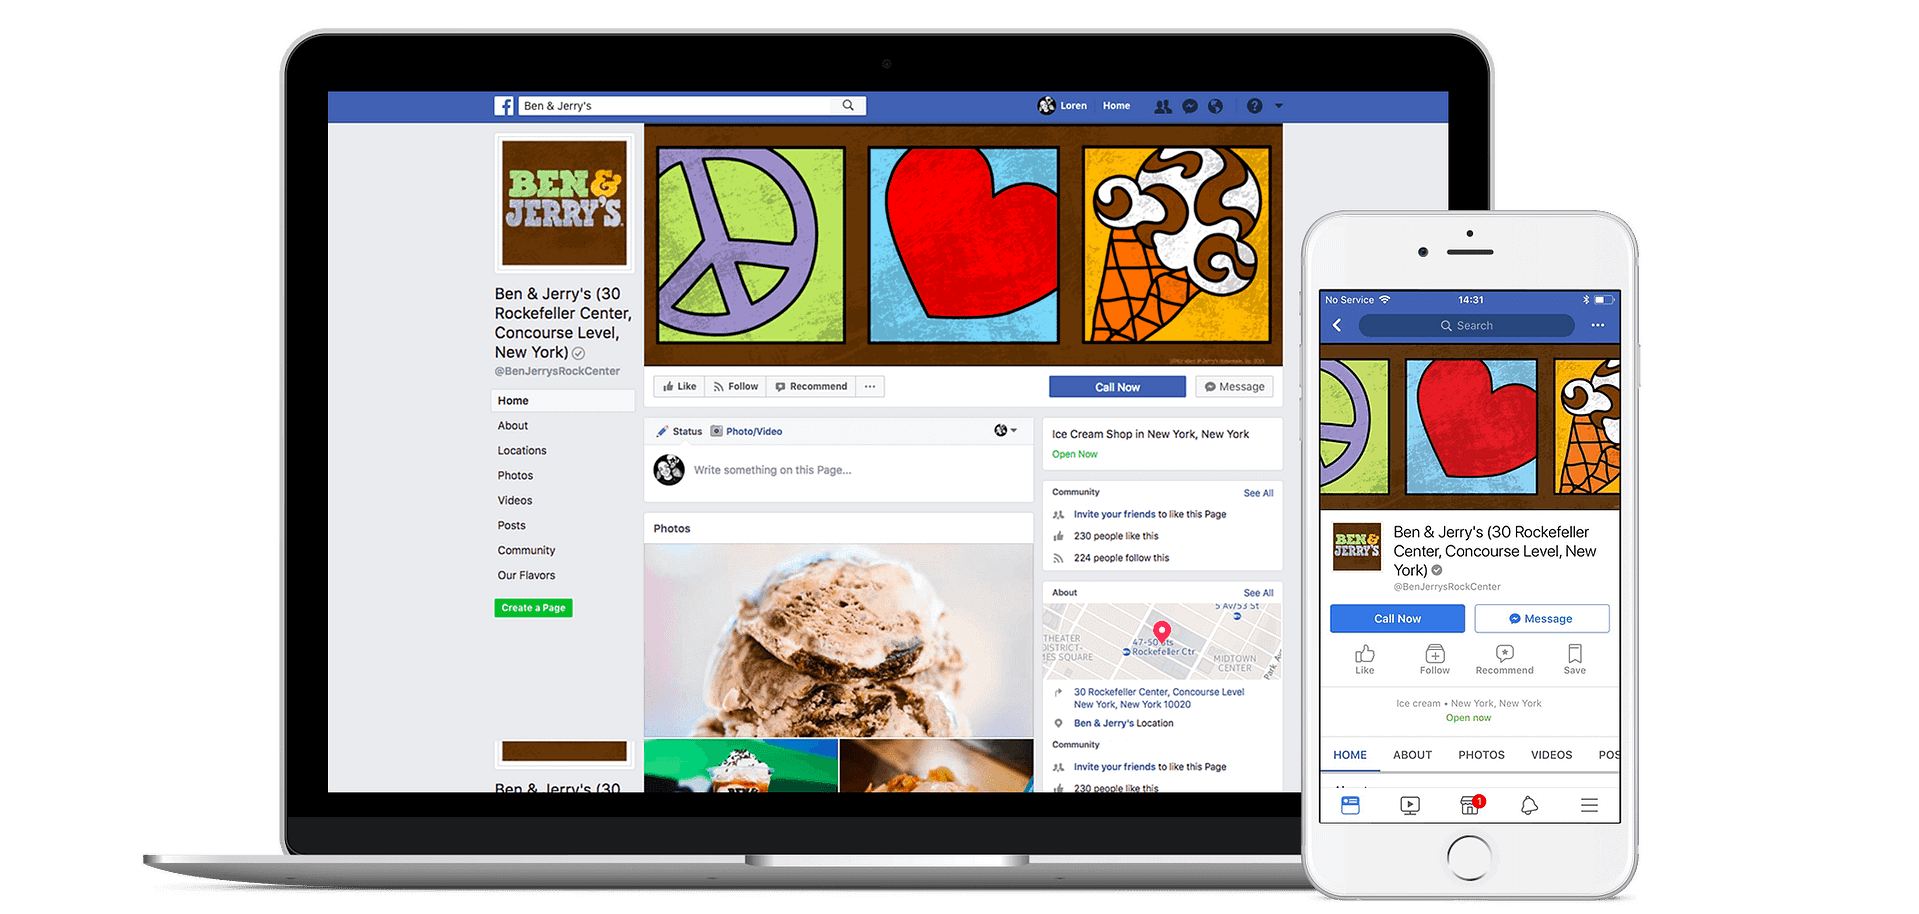 Add your Business and Events to Facebook